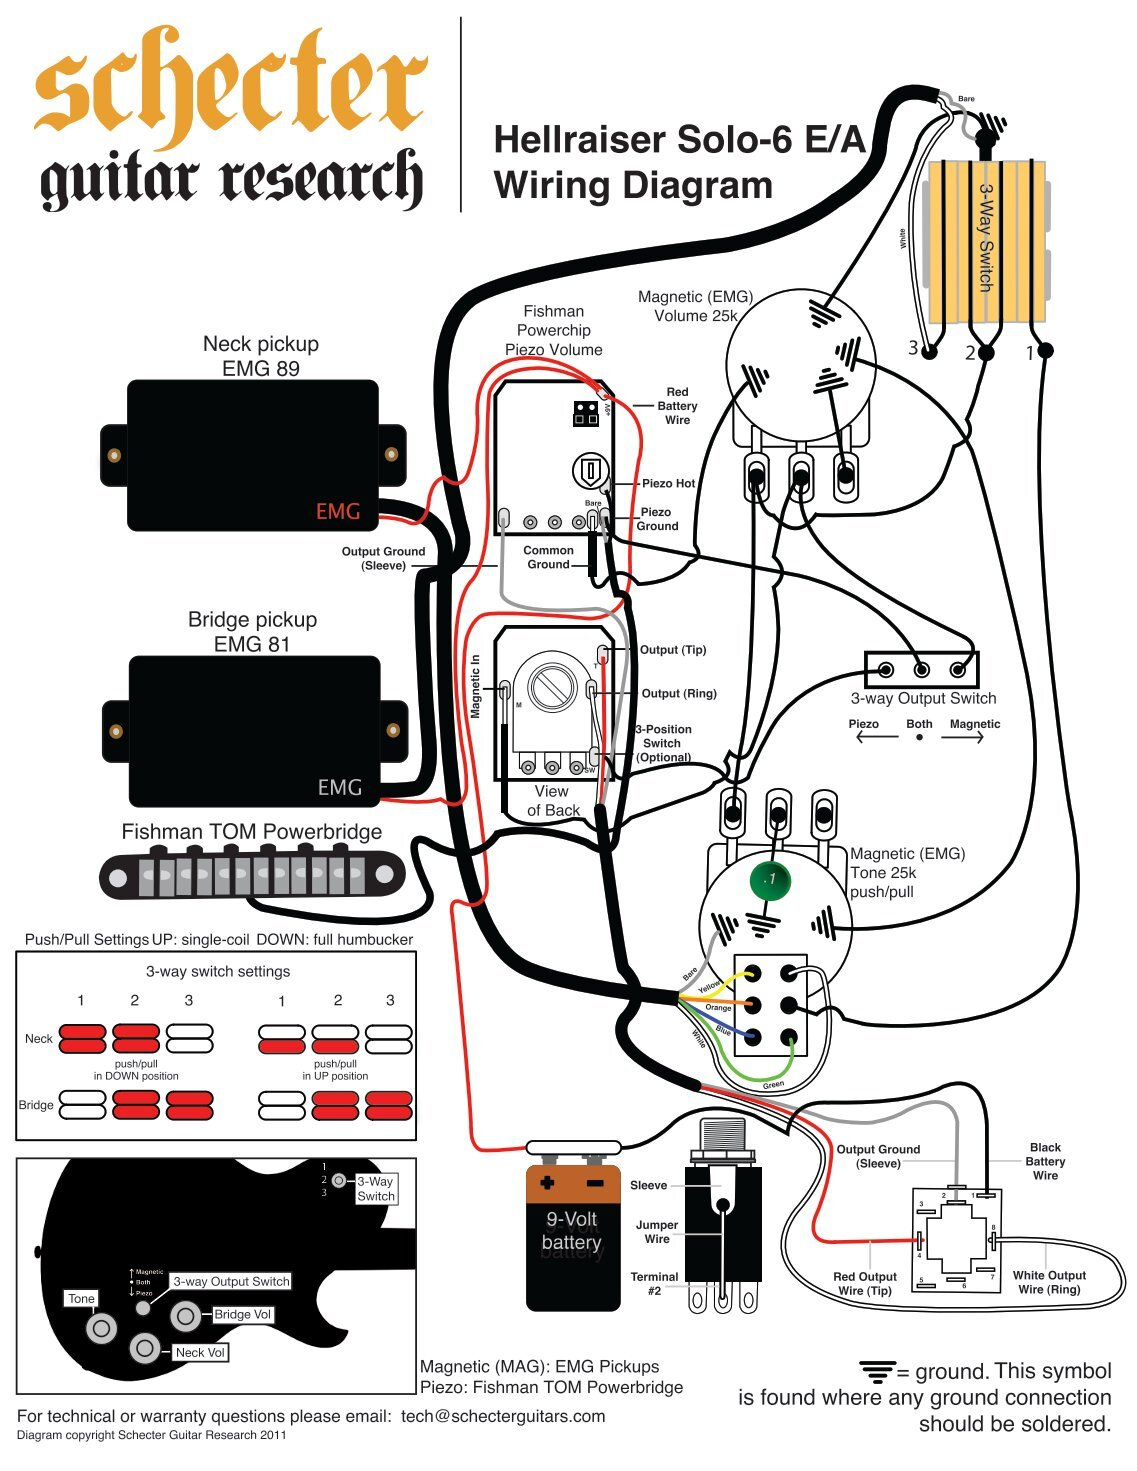 electric guitar wiring diagram for schecter schecter hellraiser wiring   elsavadorla bc rich wiring harness BC Rich Eagle